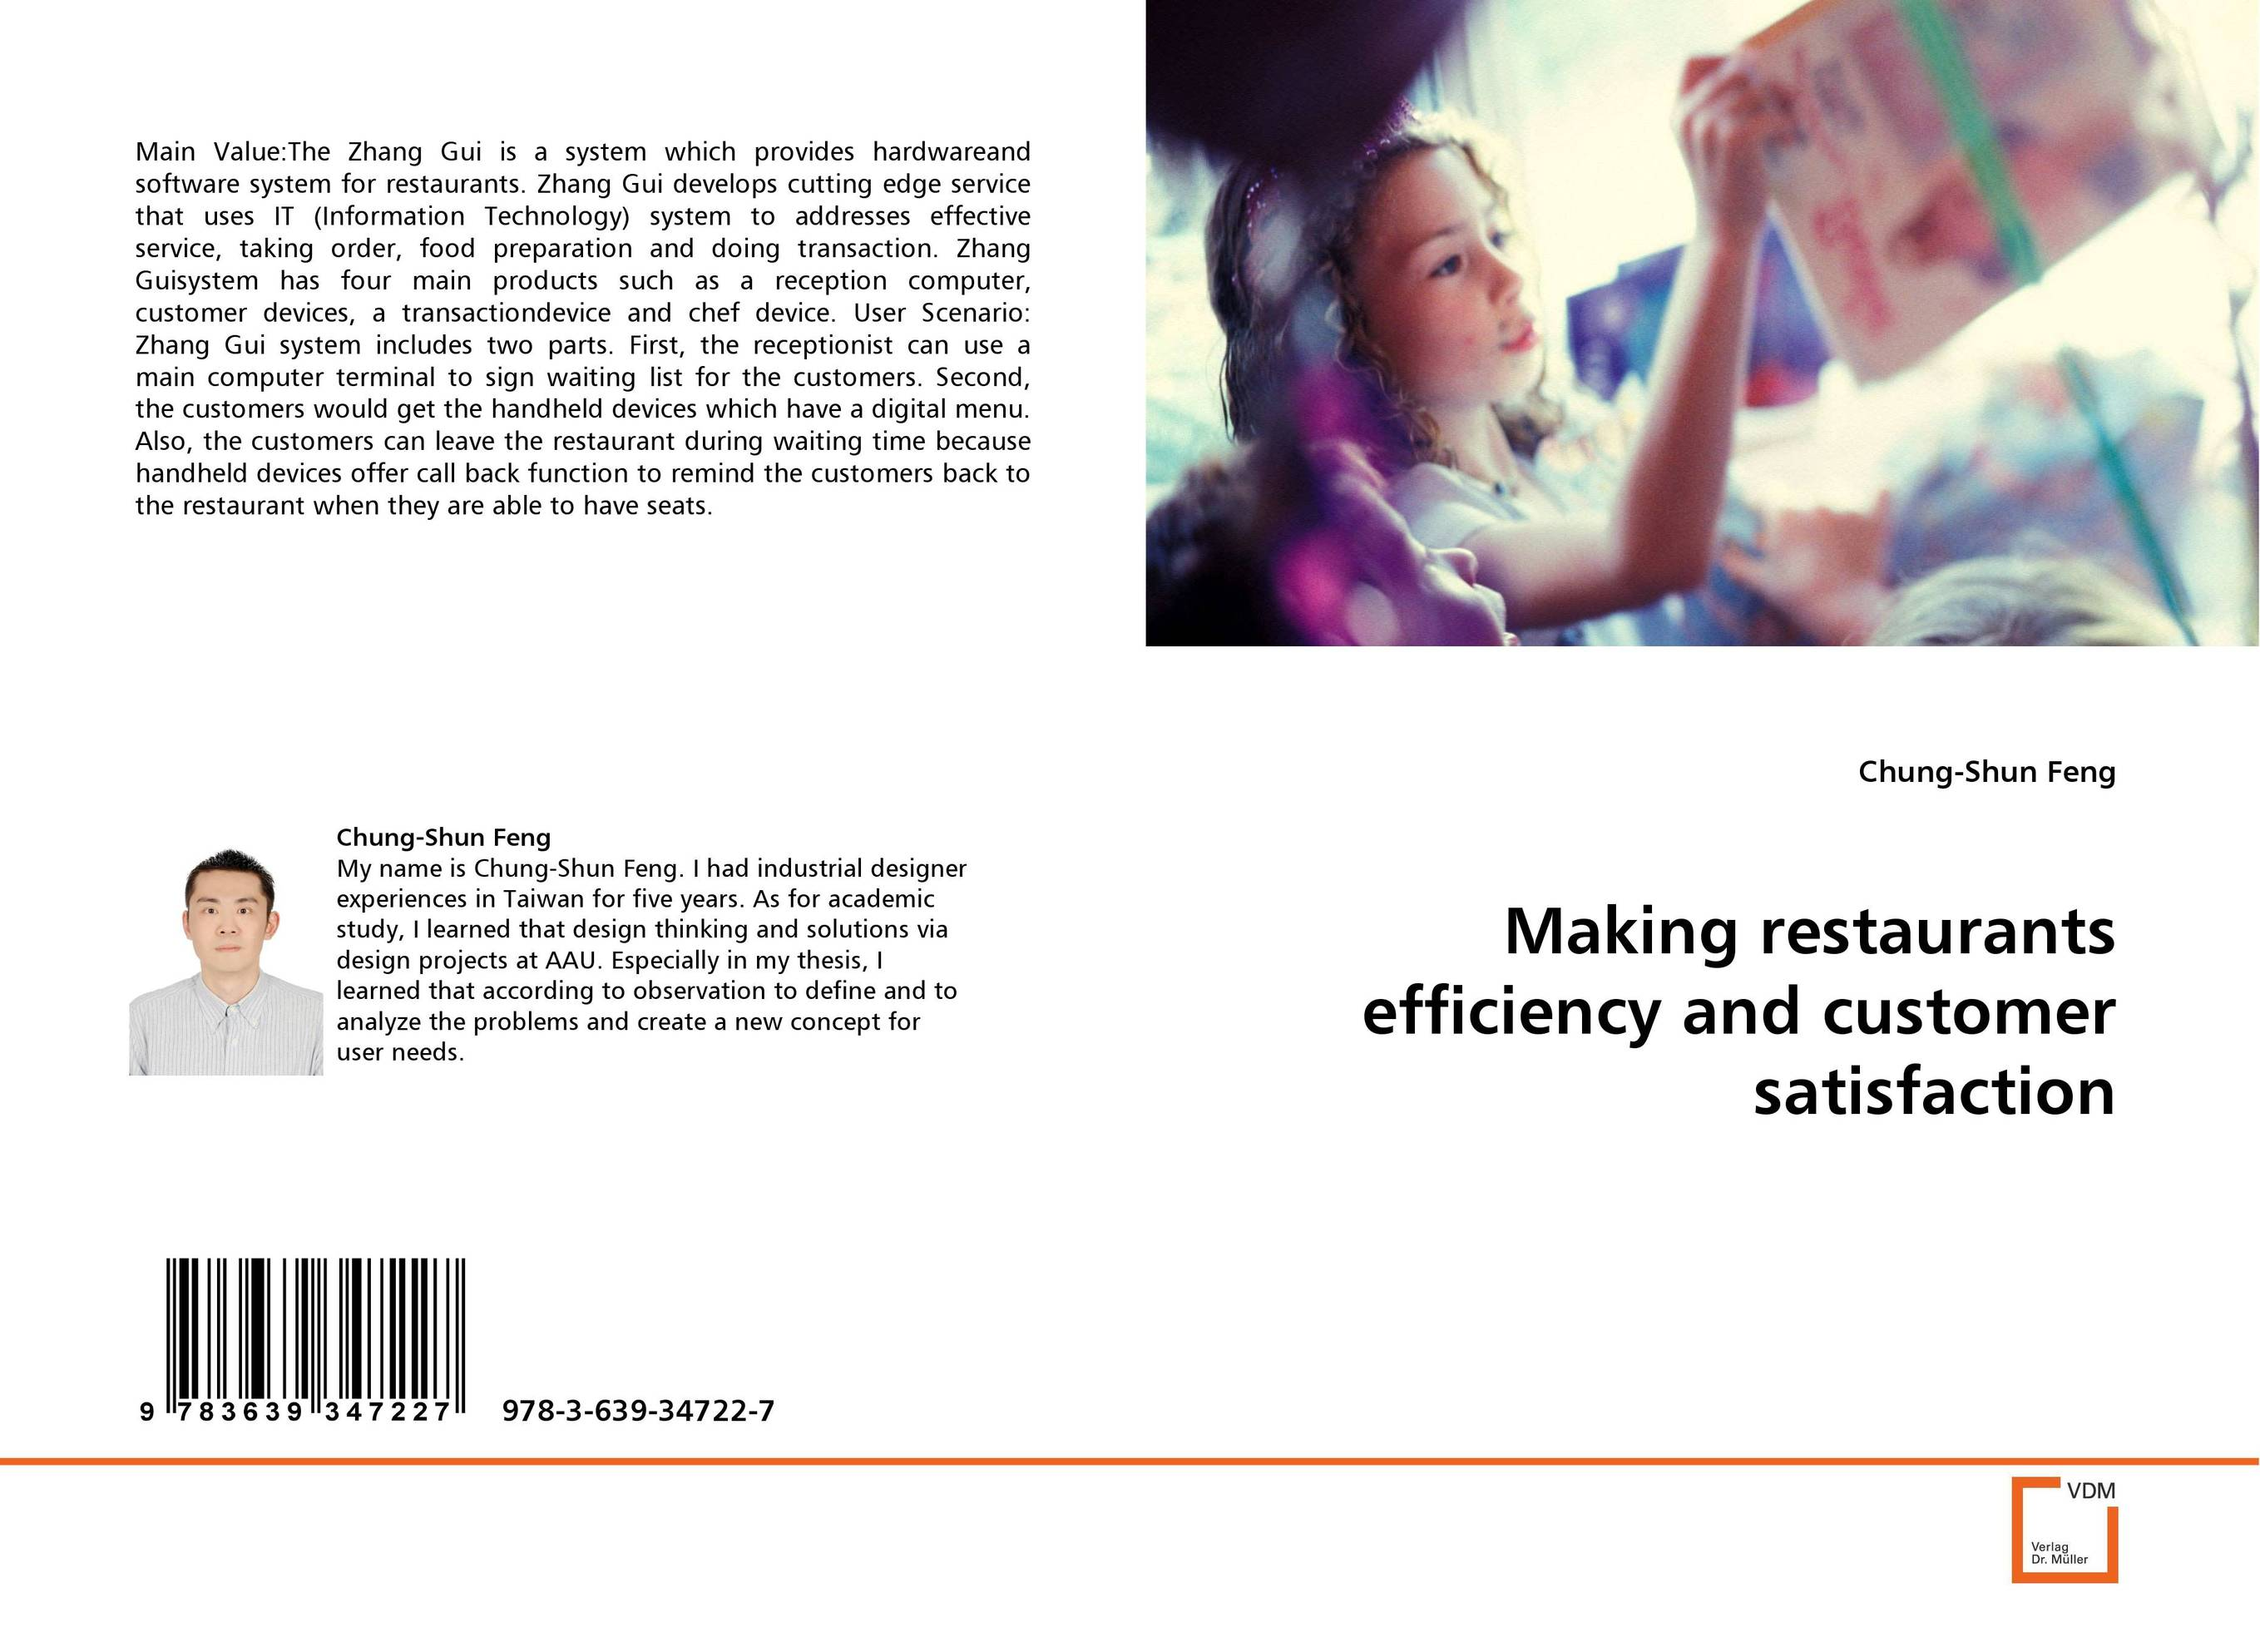 Making restaurants efficiency and customer satisfaction